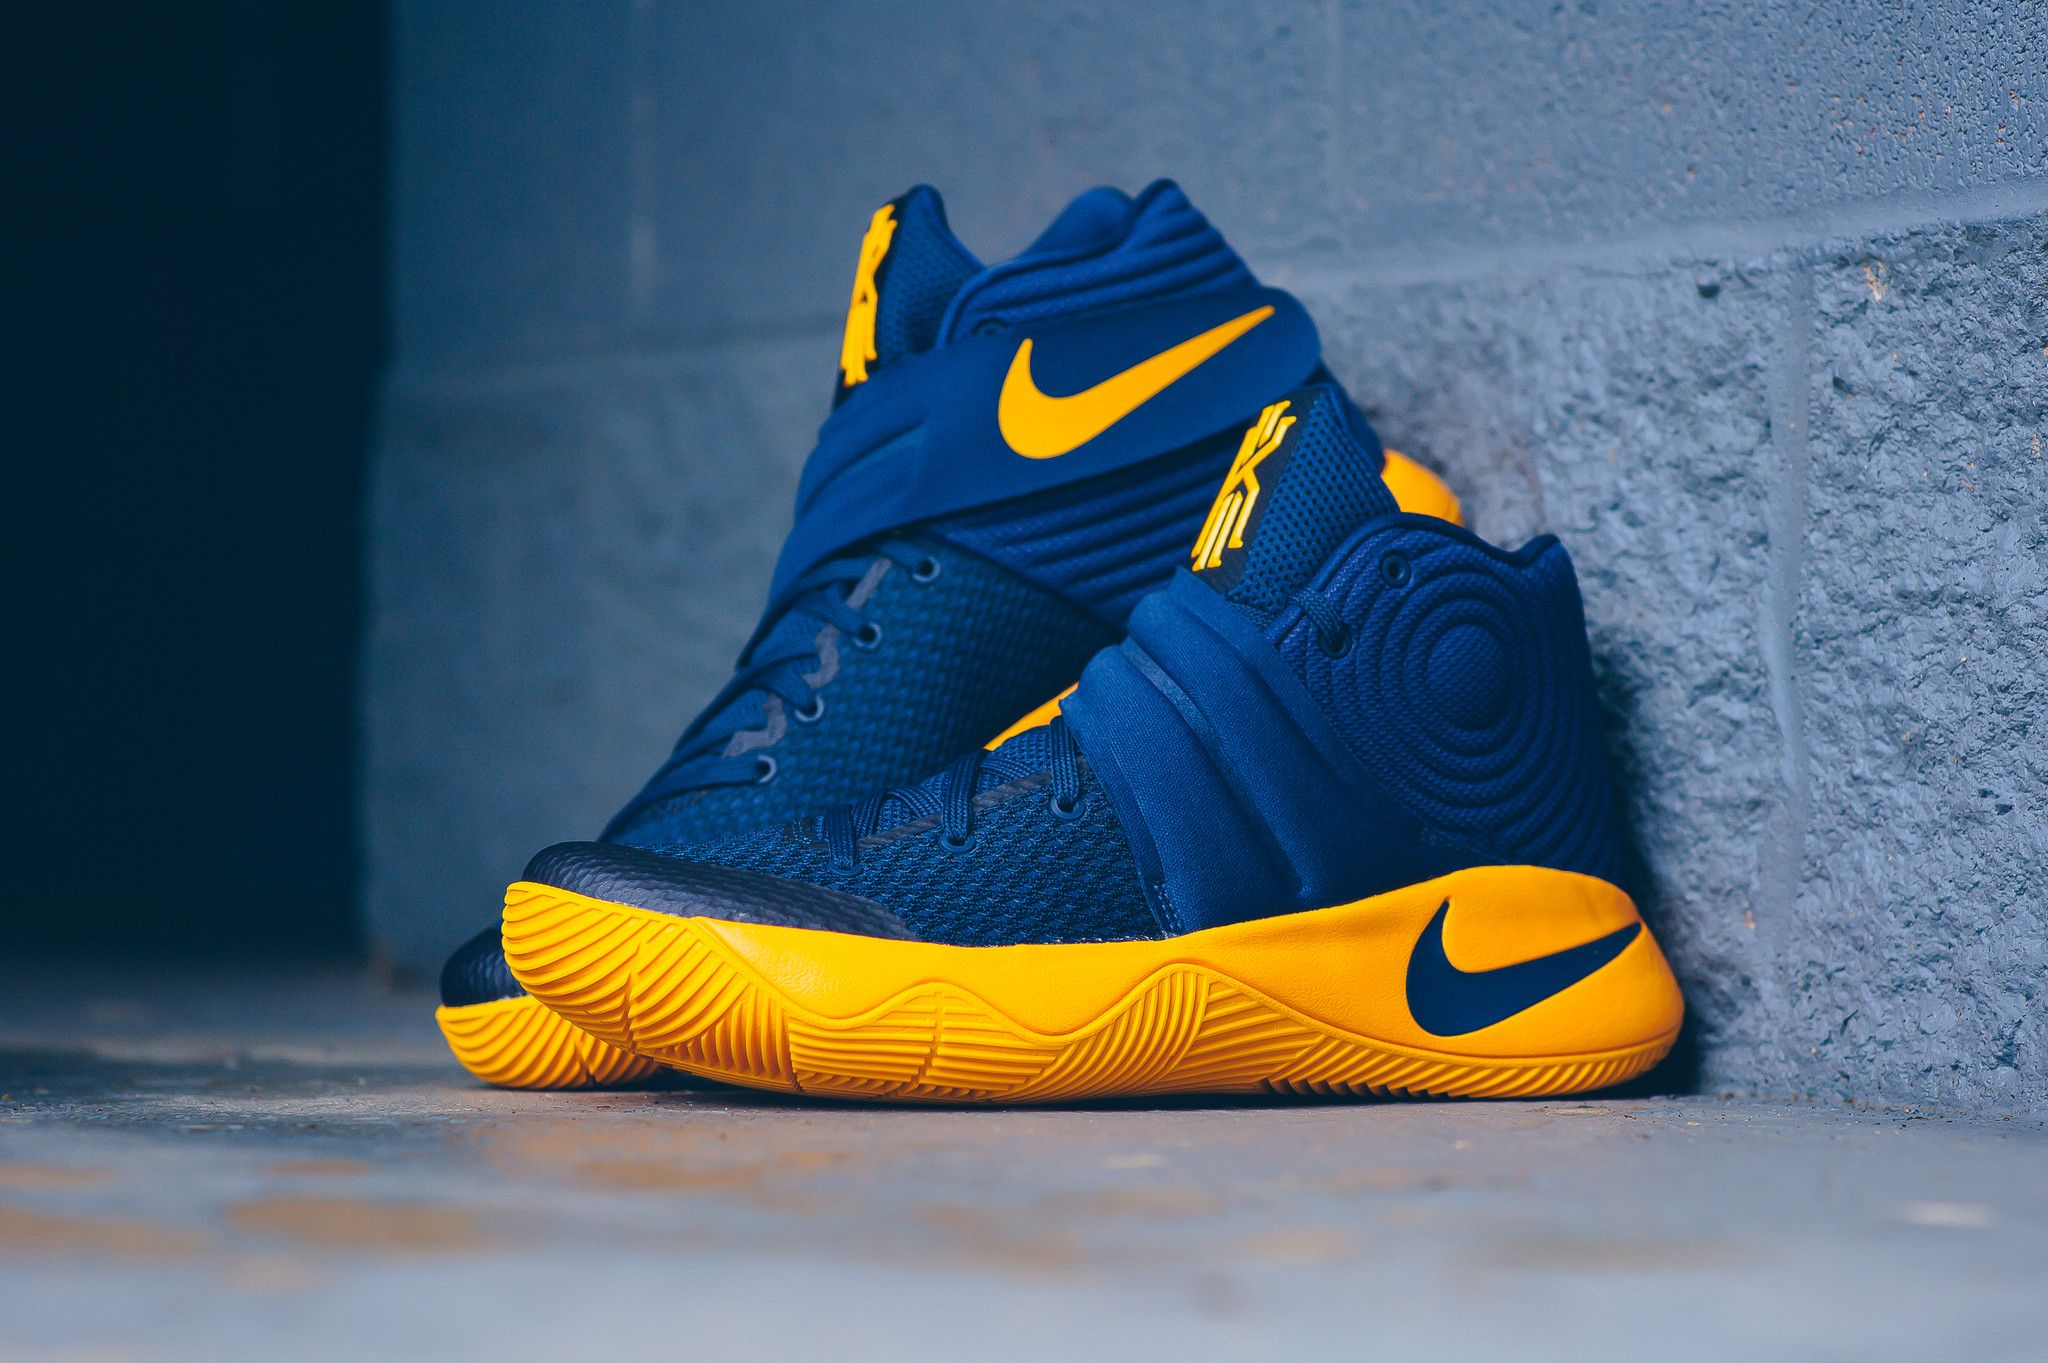 new style 274ed fffa3 Detailed images of the Nike Kyrie 2 Cavs are featured. Look for it at Nike  stores nationwide on May 19th for  120.